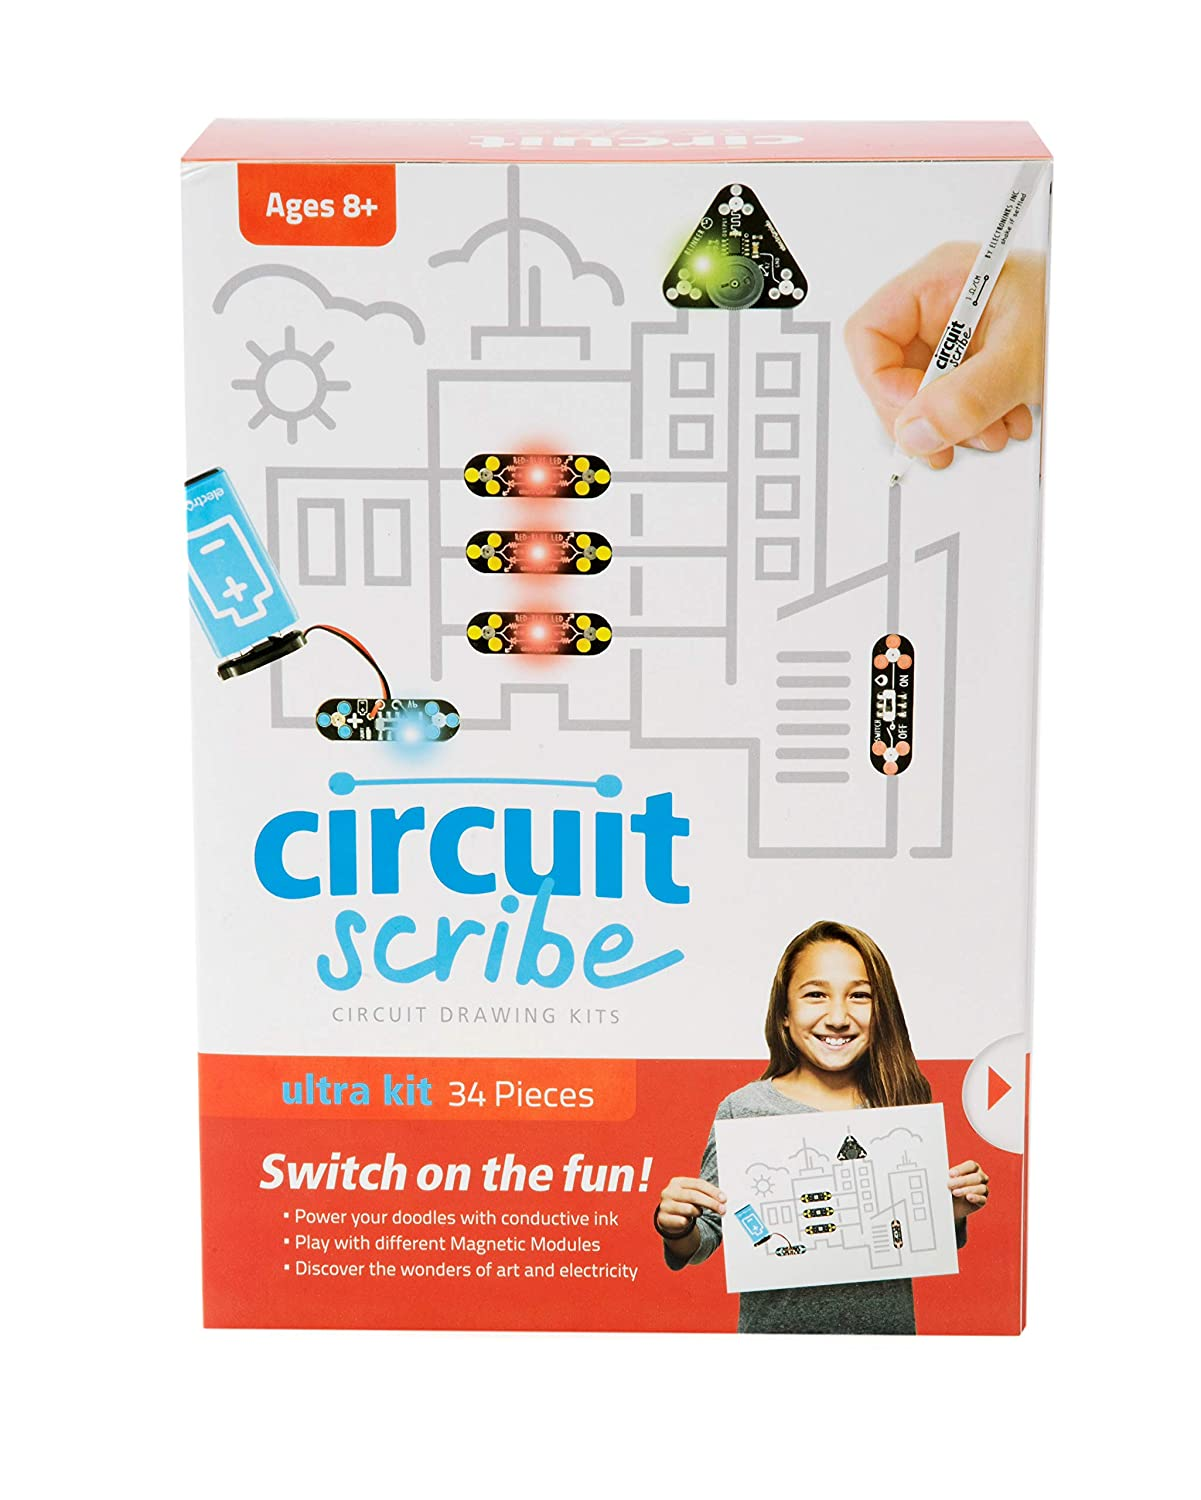 Circuit Scribe 32 Piece Ultimate Kit Includes Magnetic Kickstarter Connection Cables Super Conductive Silver Ink Pen A Motor And Everything You Need To